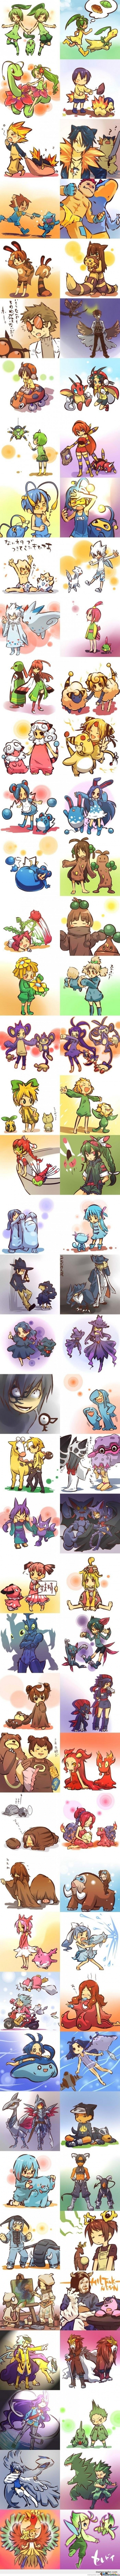 Pokemon Second Generation